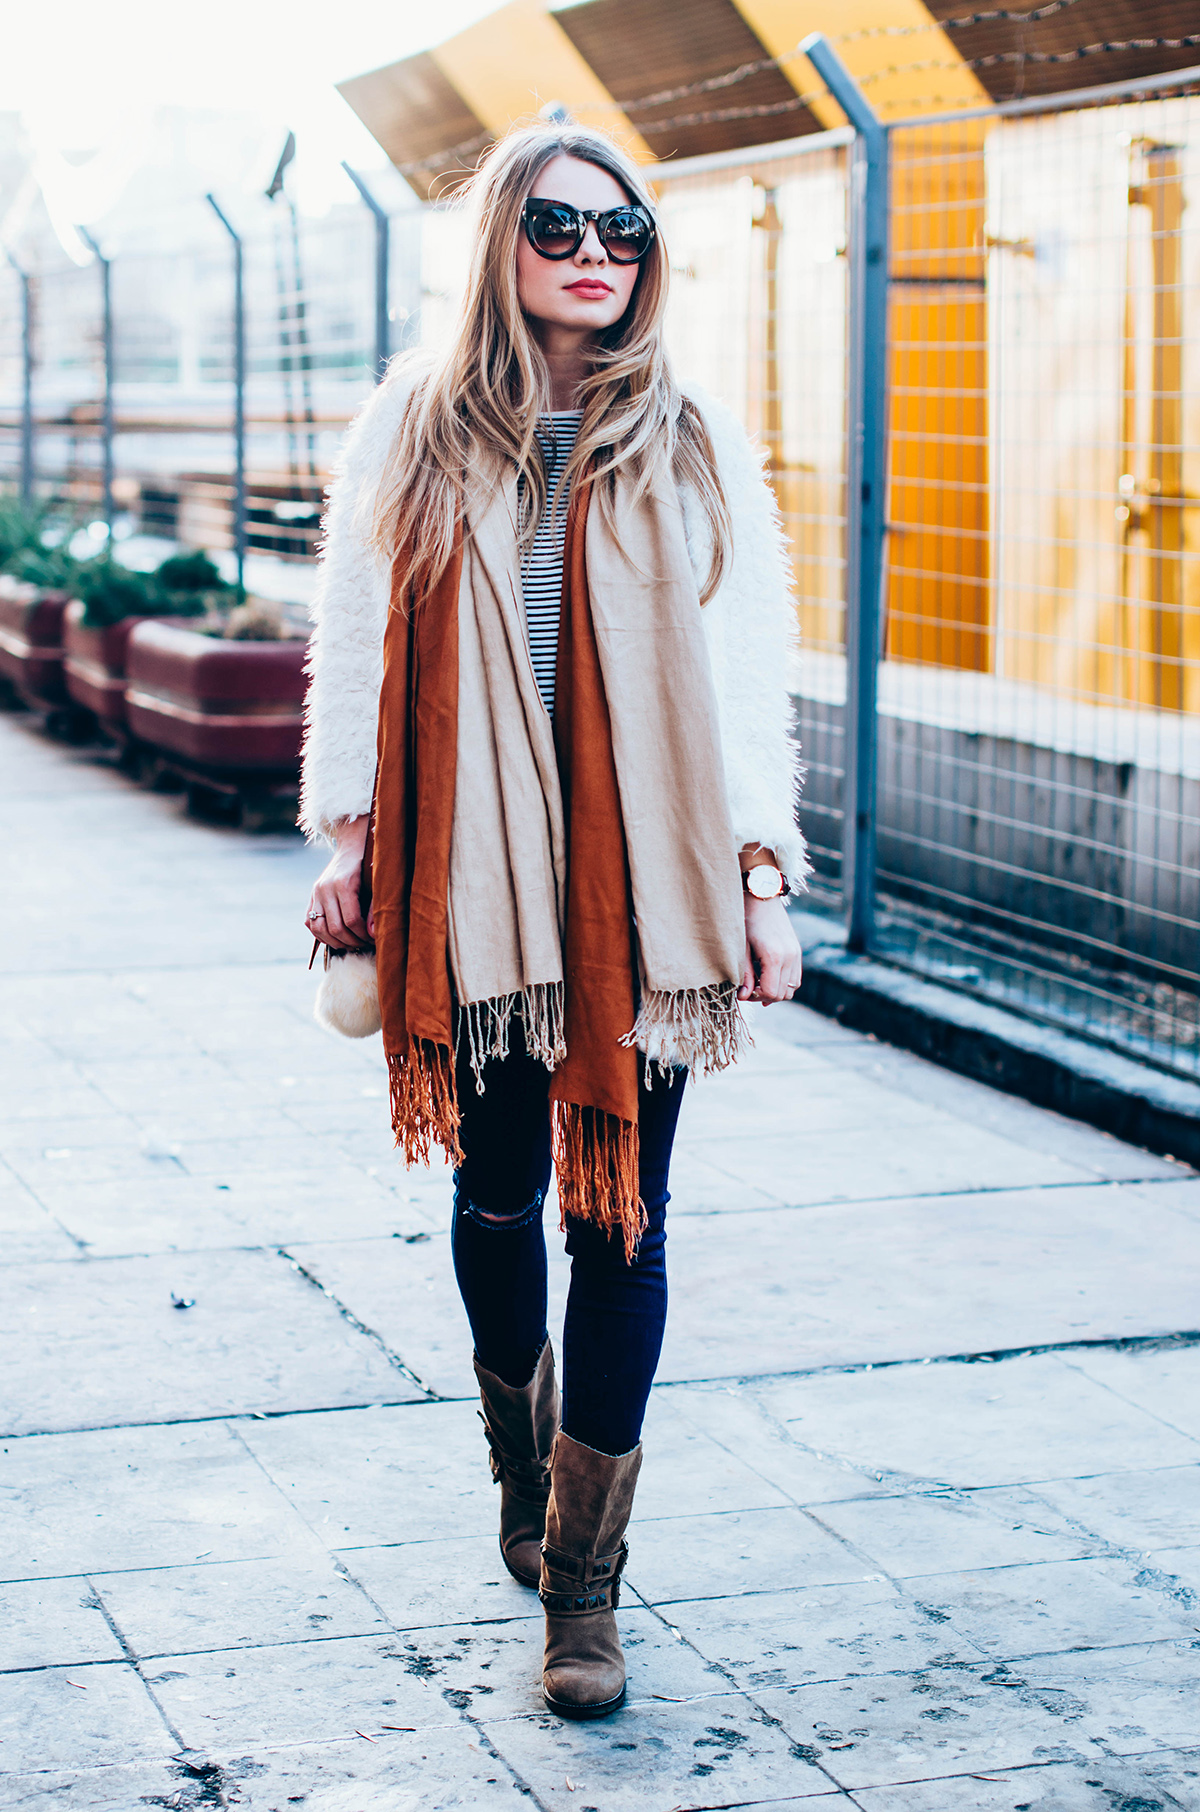 white-fluffy-cardgan-ripped-skinny-jeans-suede-boots-camel-scarf-fluffy-keyrng-cat-eye-sunglasses (5)